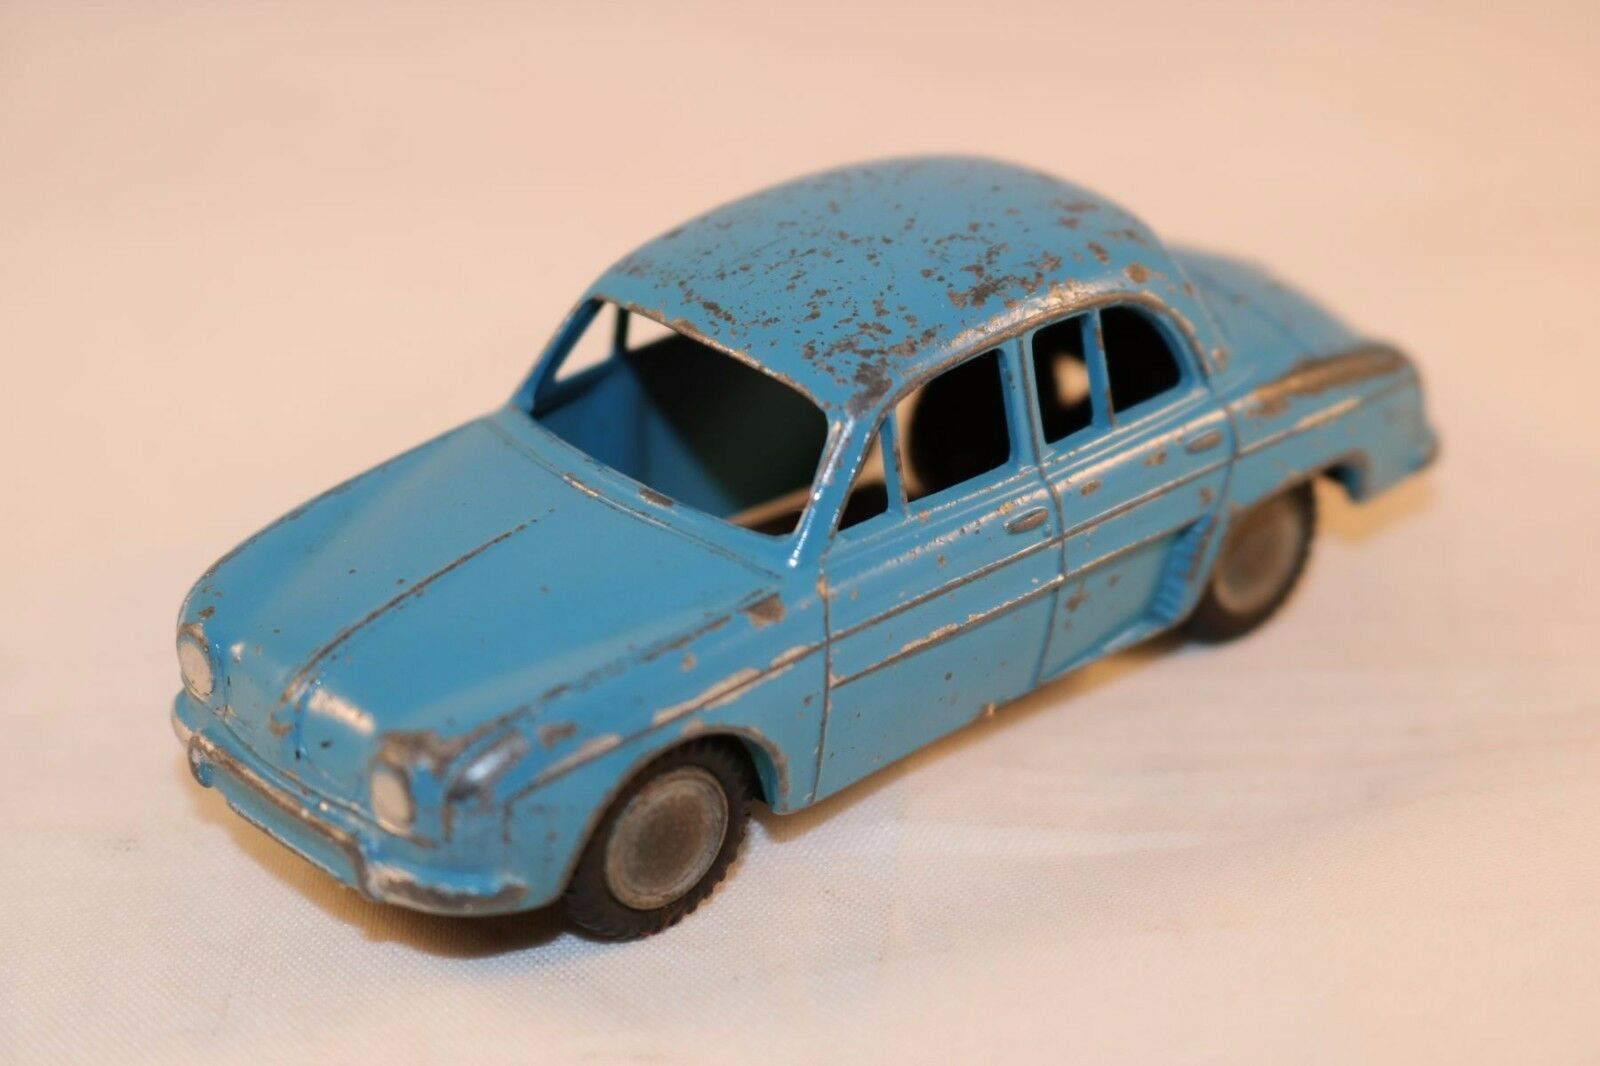 Lion Car Renault Dauphine bluee in good plus original condition made in Holland